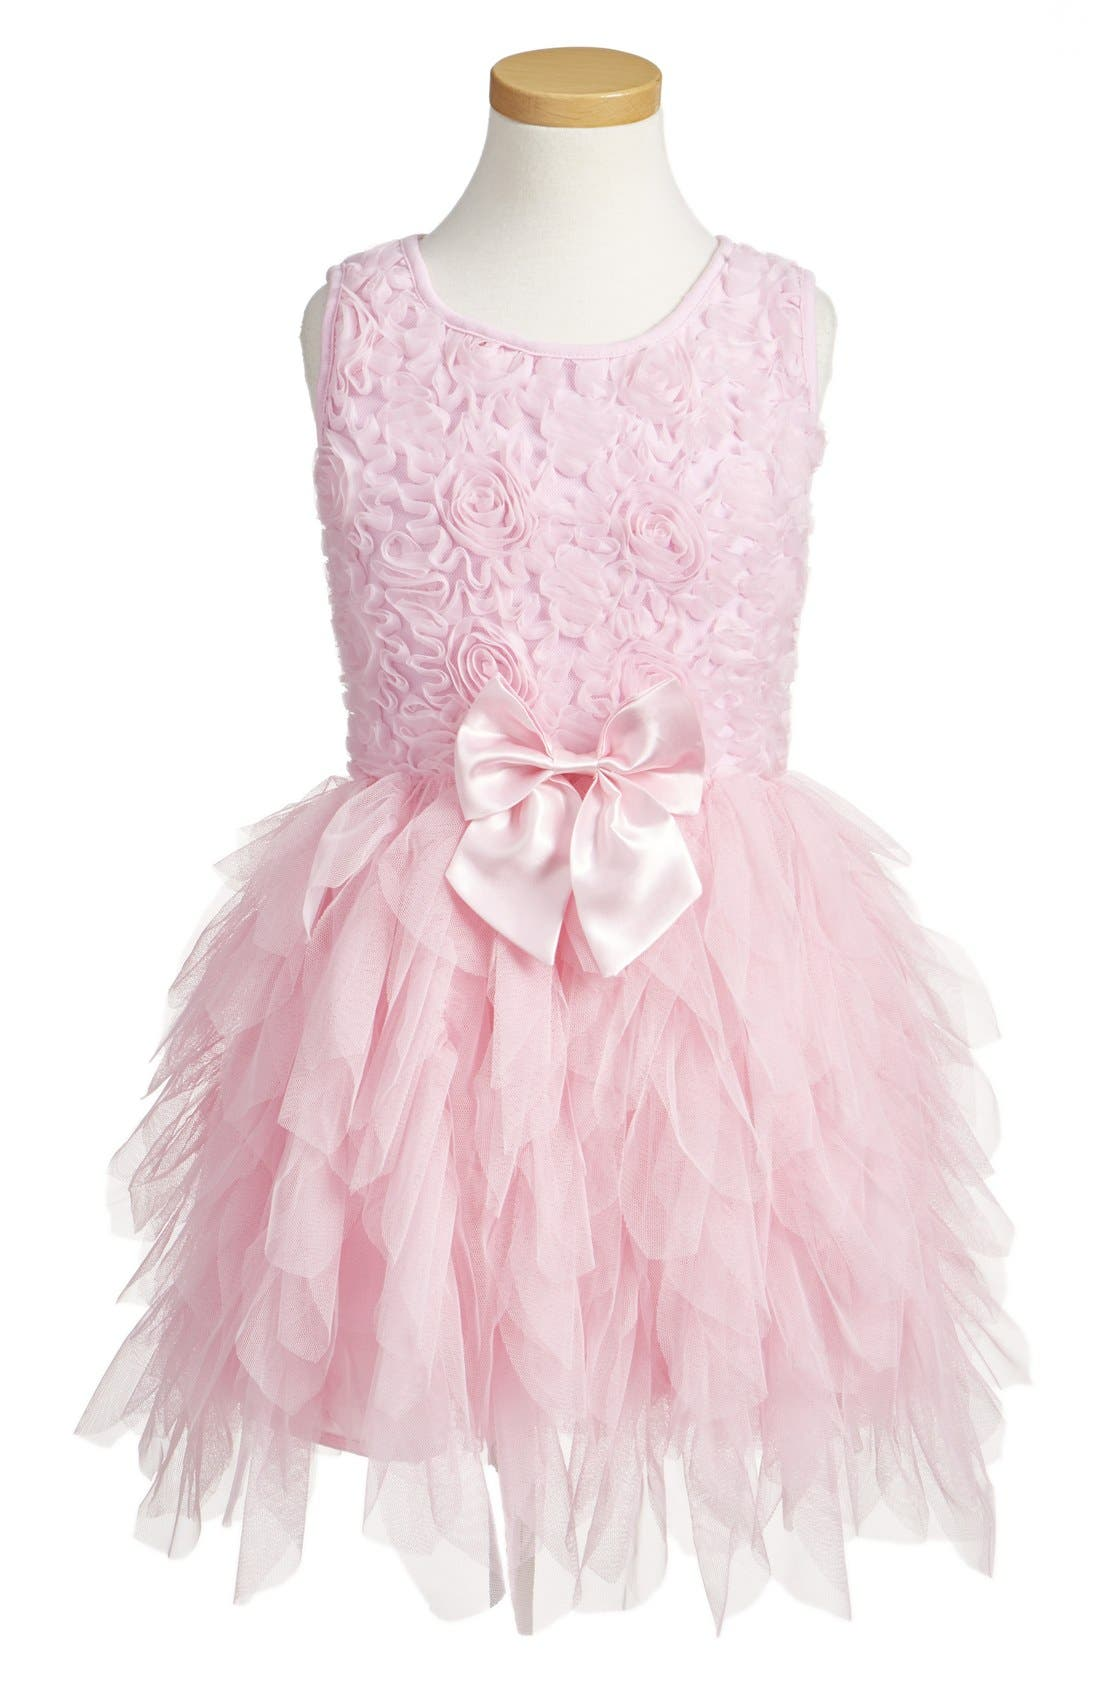 Popatu Ribbon Rosette Sleeveless Tulle Dress (Toddler Girls & Little Girls)